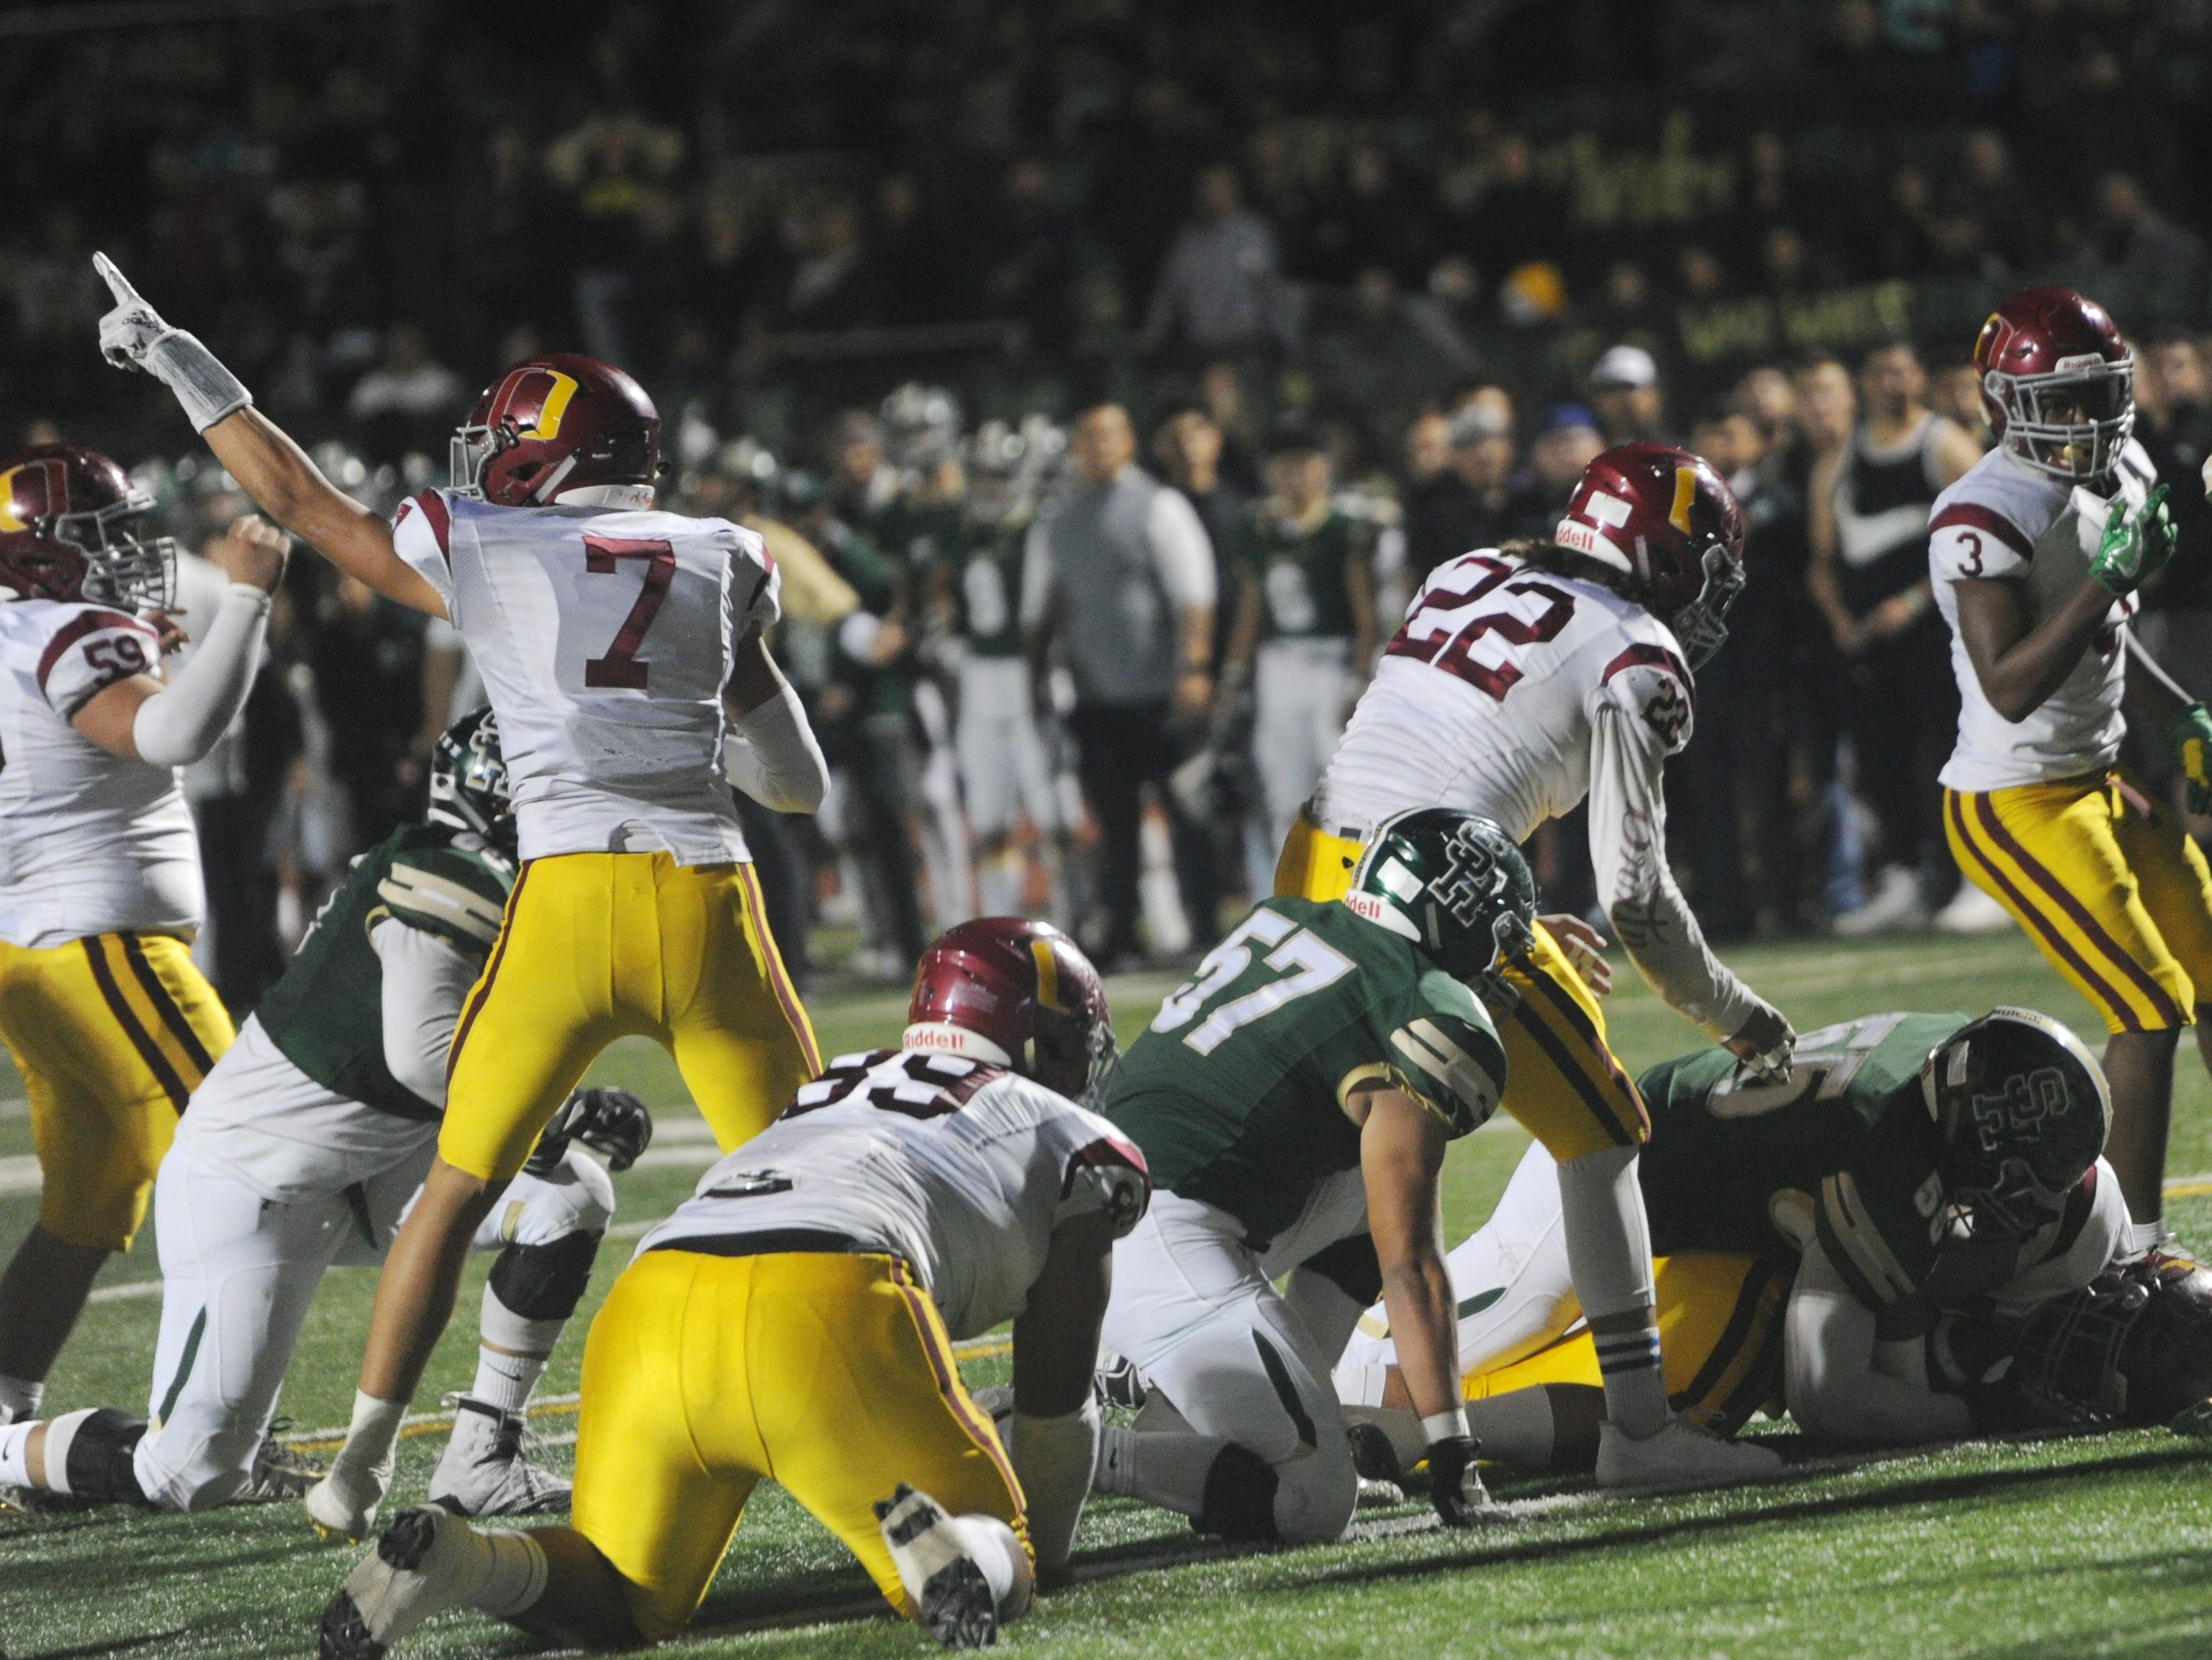 Tony Lopez (7) signals Oxnard's ball after the Yellowjackets recovered a South Hills fumble near their own end zone during the CIF-Southern Section Division 6 championship game at Covina District Stadium on Saturday night. Oxnard lost, 24-13.